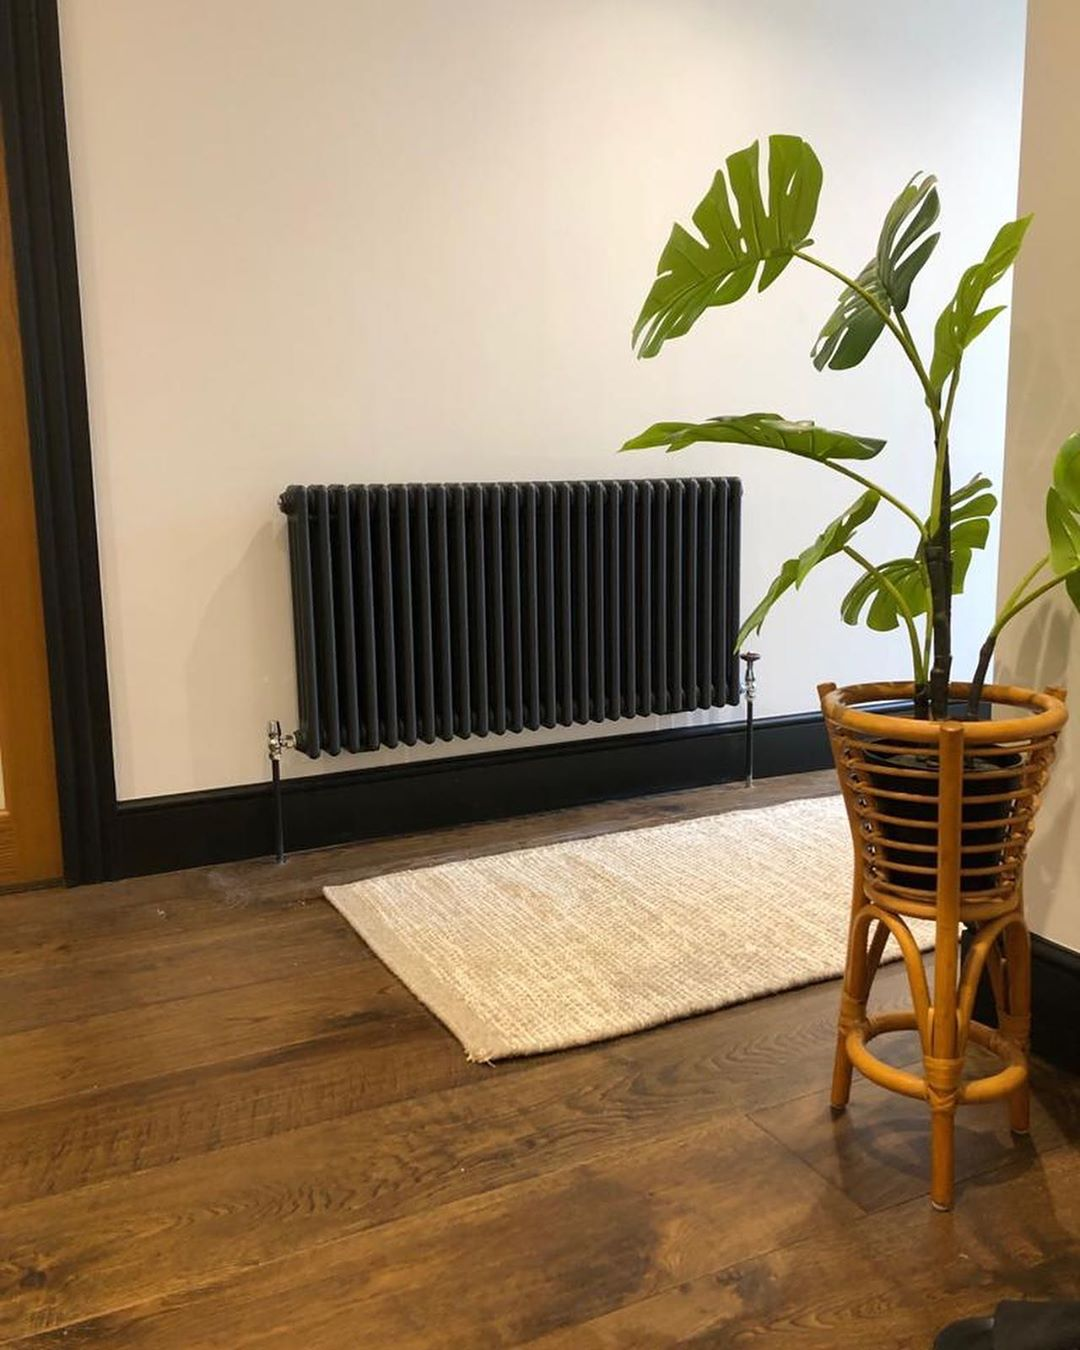 anthracite column radiator next to a plant